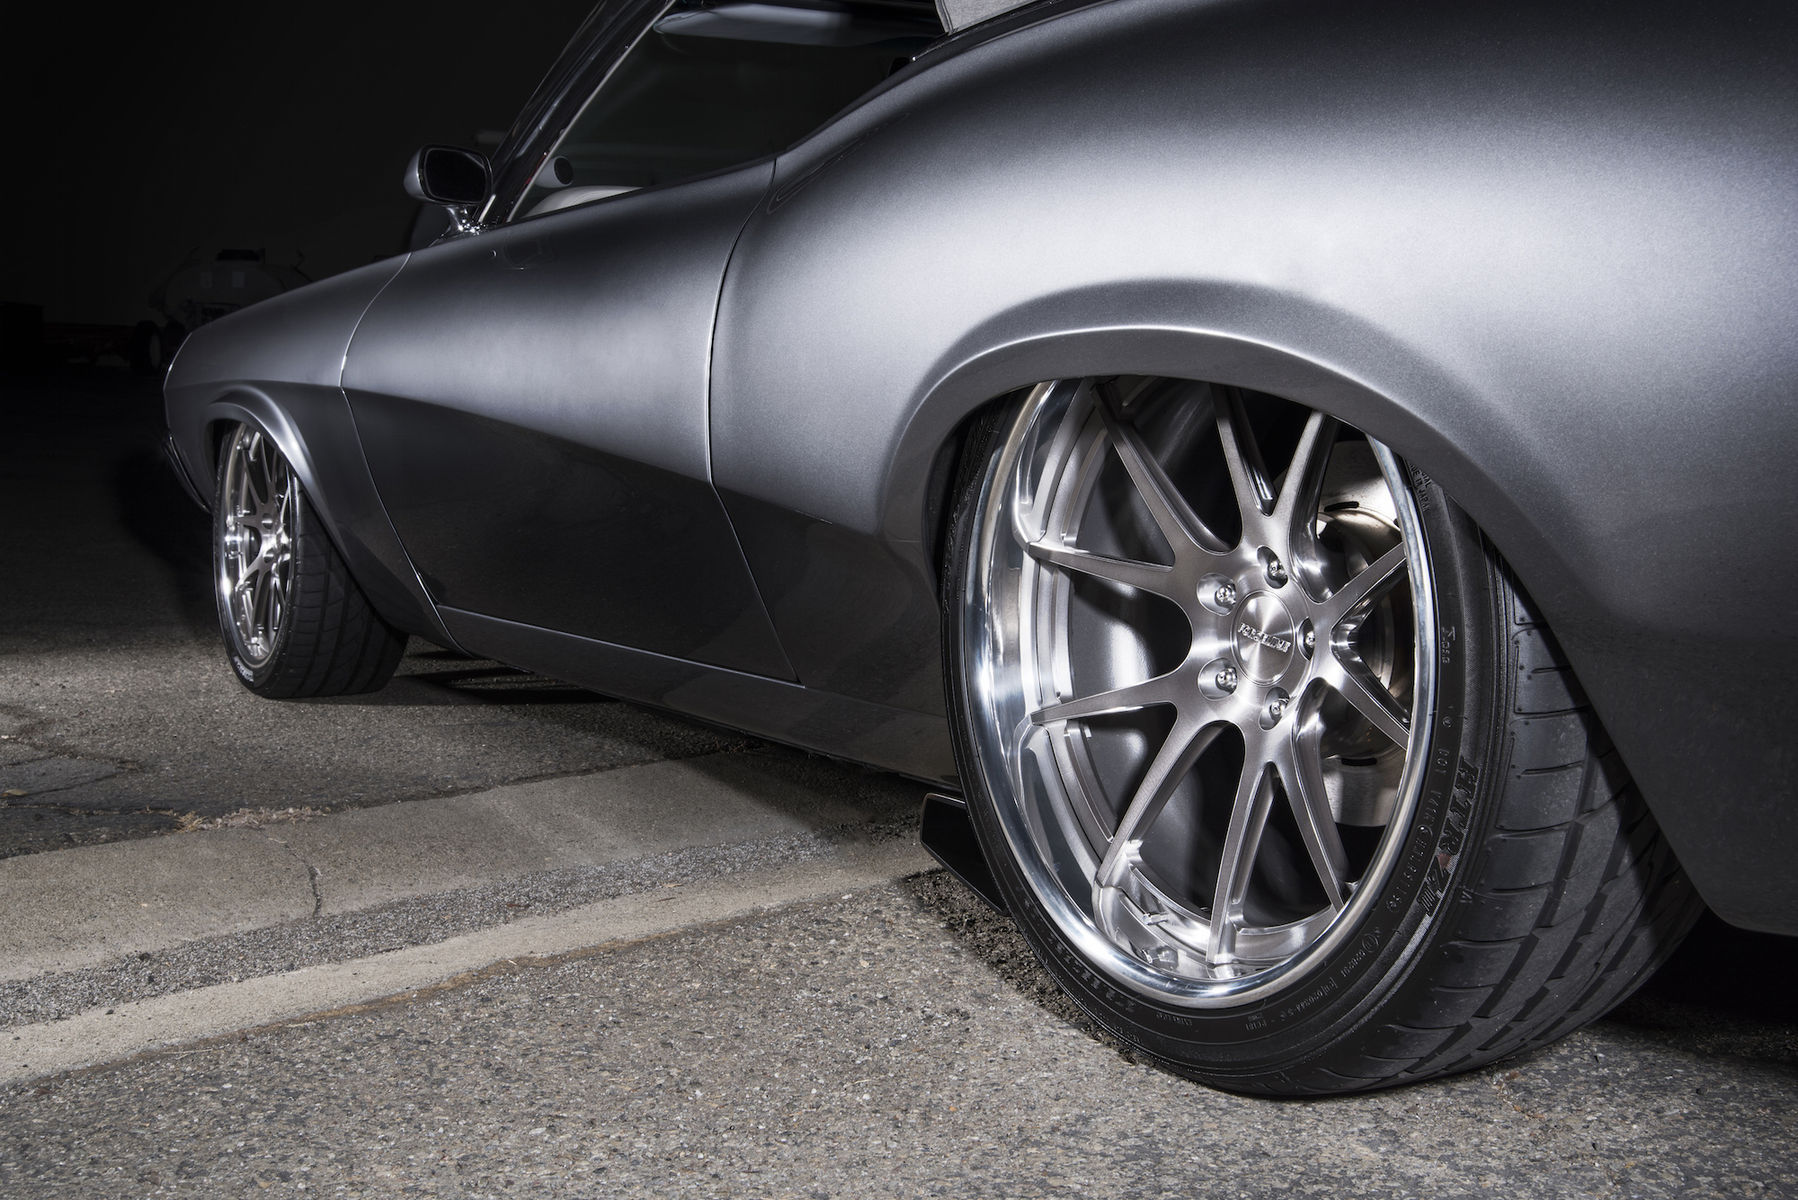 1969 Mercury Cougar | Gil Cuesta's Mercury Cougar on Forgeline GA3C Concave Wheels